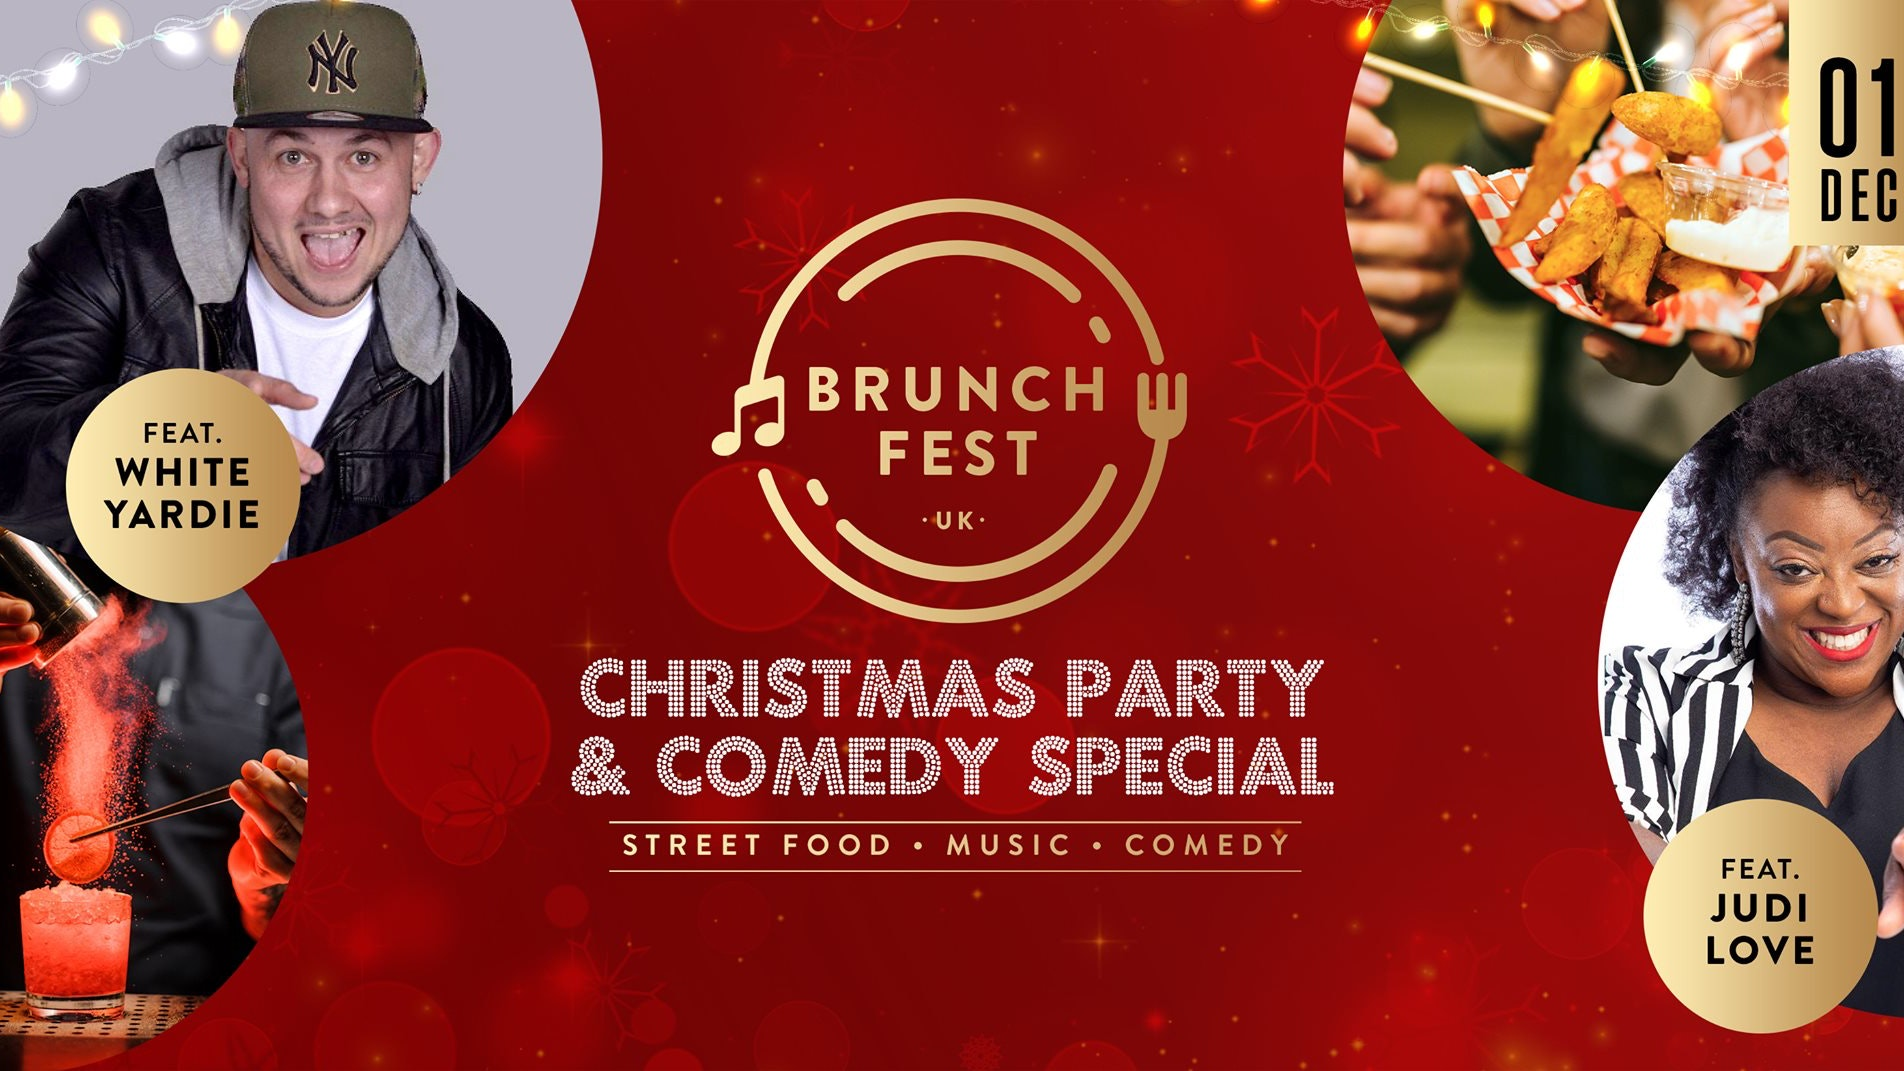 Brunchfest UK Christmas Party & Comedy Special